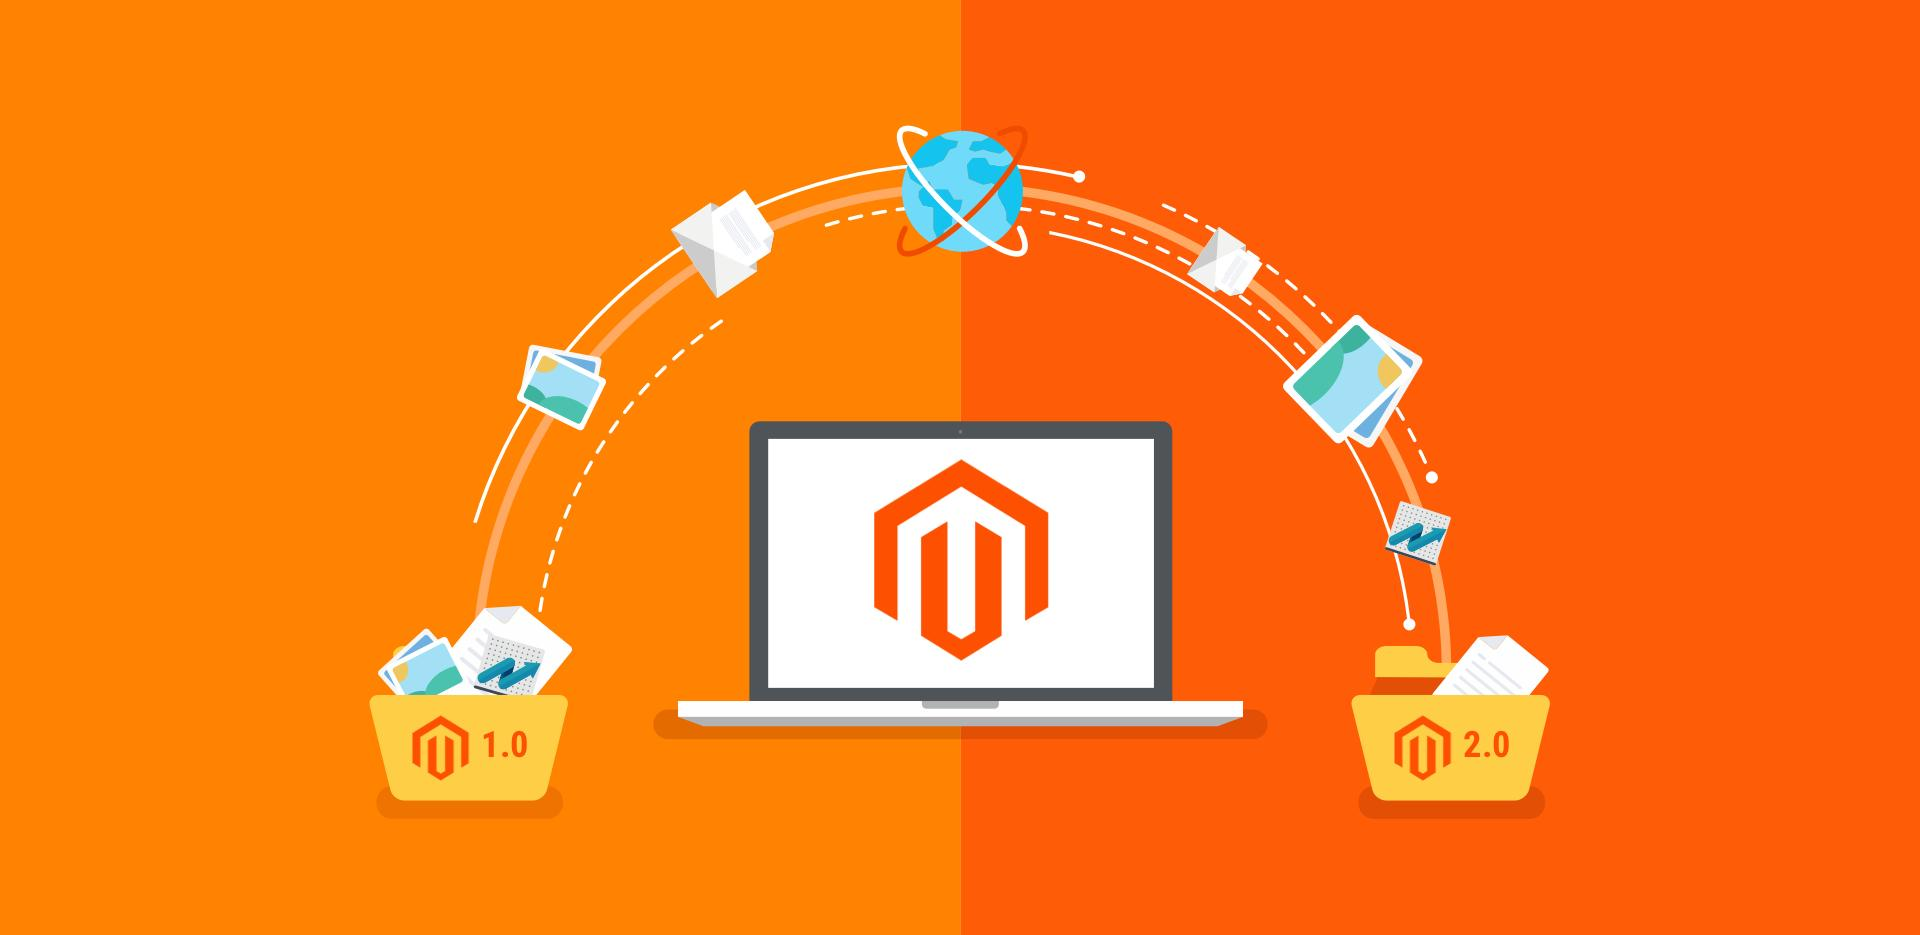 Magento 1 - The fall of an empire